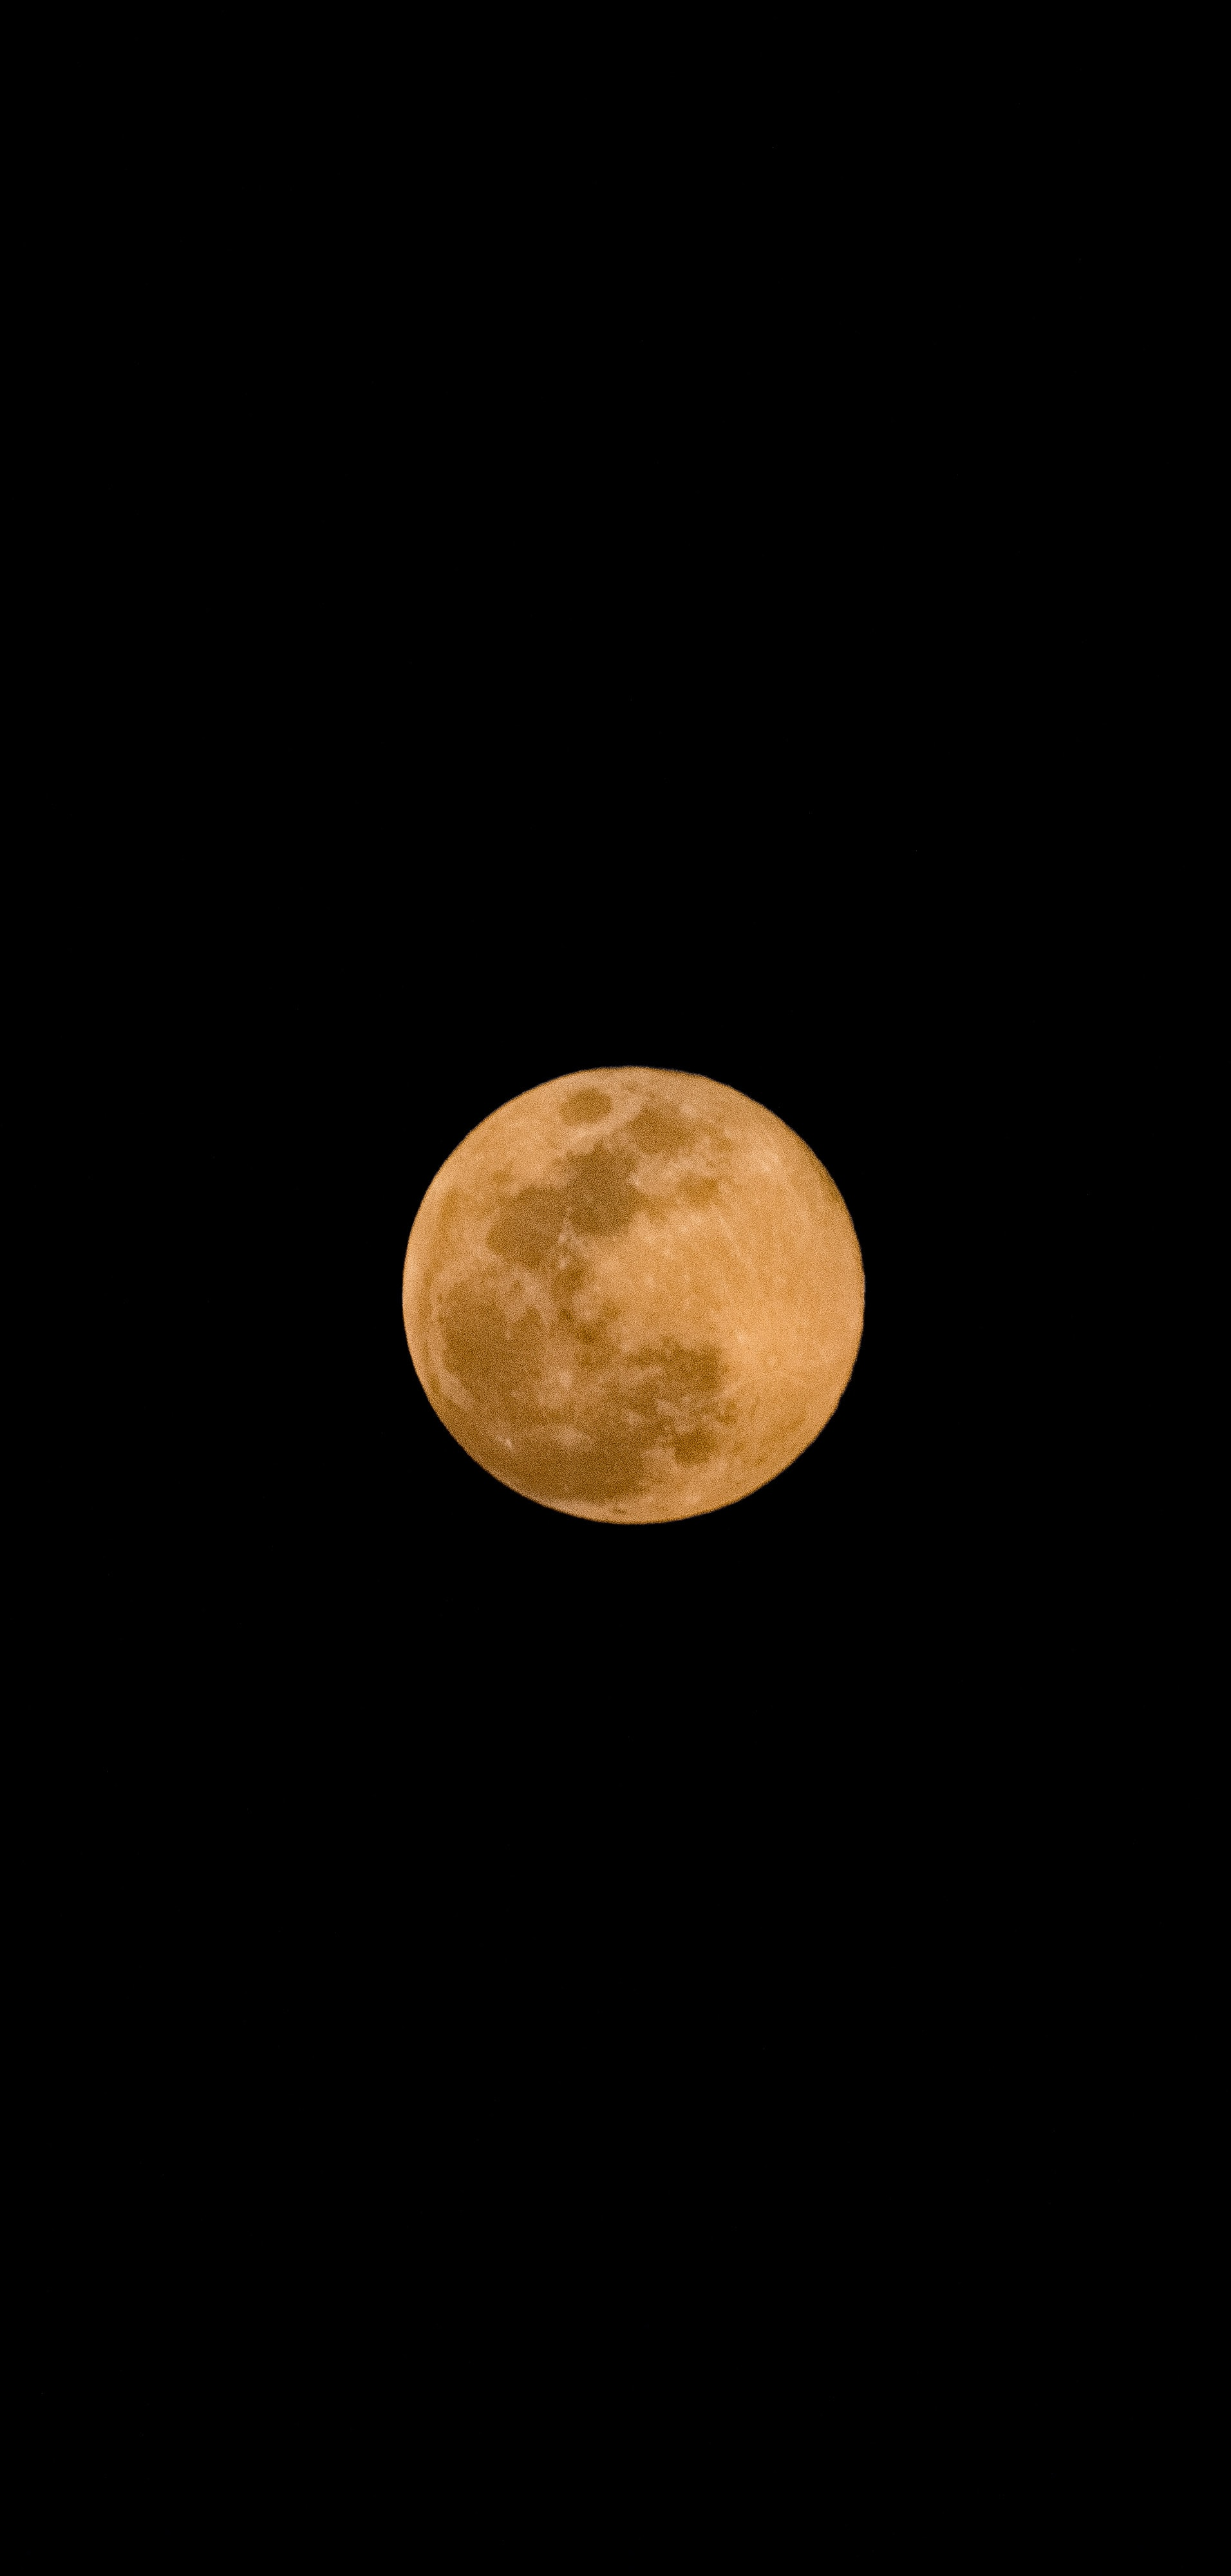 91377 free wallpaper 1080x2340 for phone, download images Sky, Night, Moon 1080x2340 for mobile